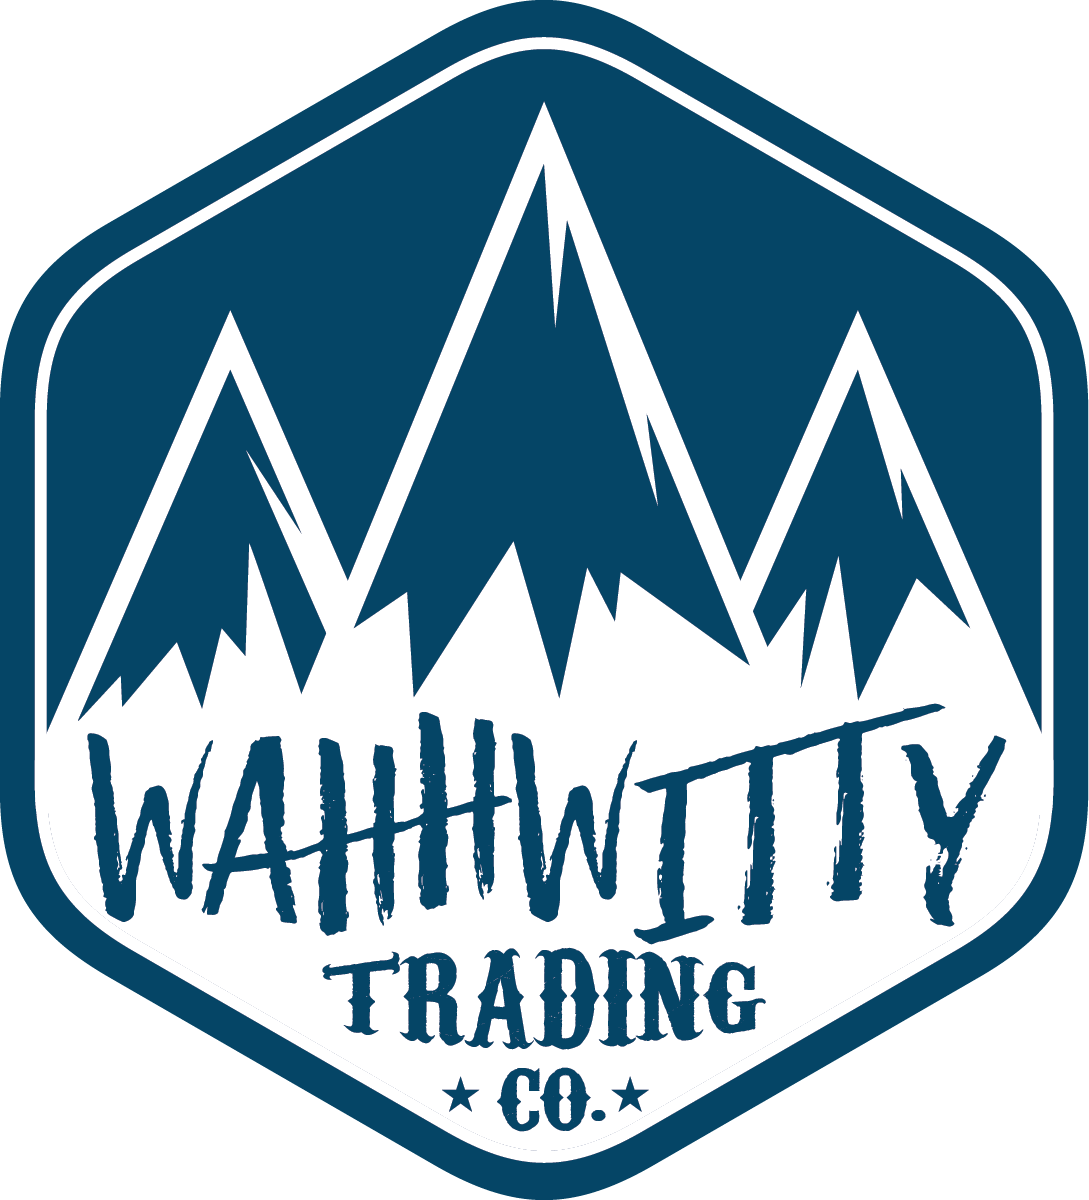 Wahhwitty Trading co logo